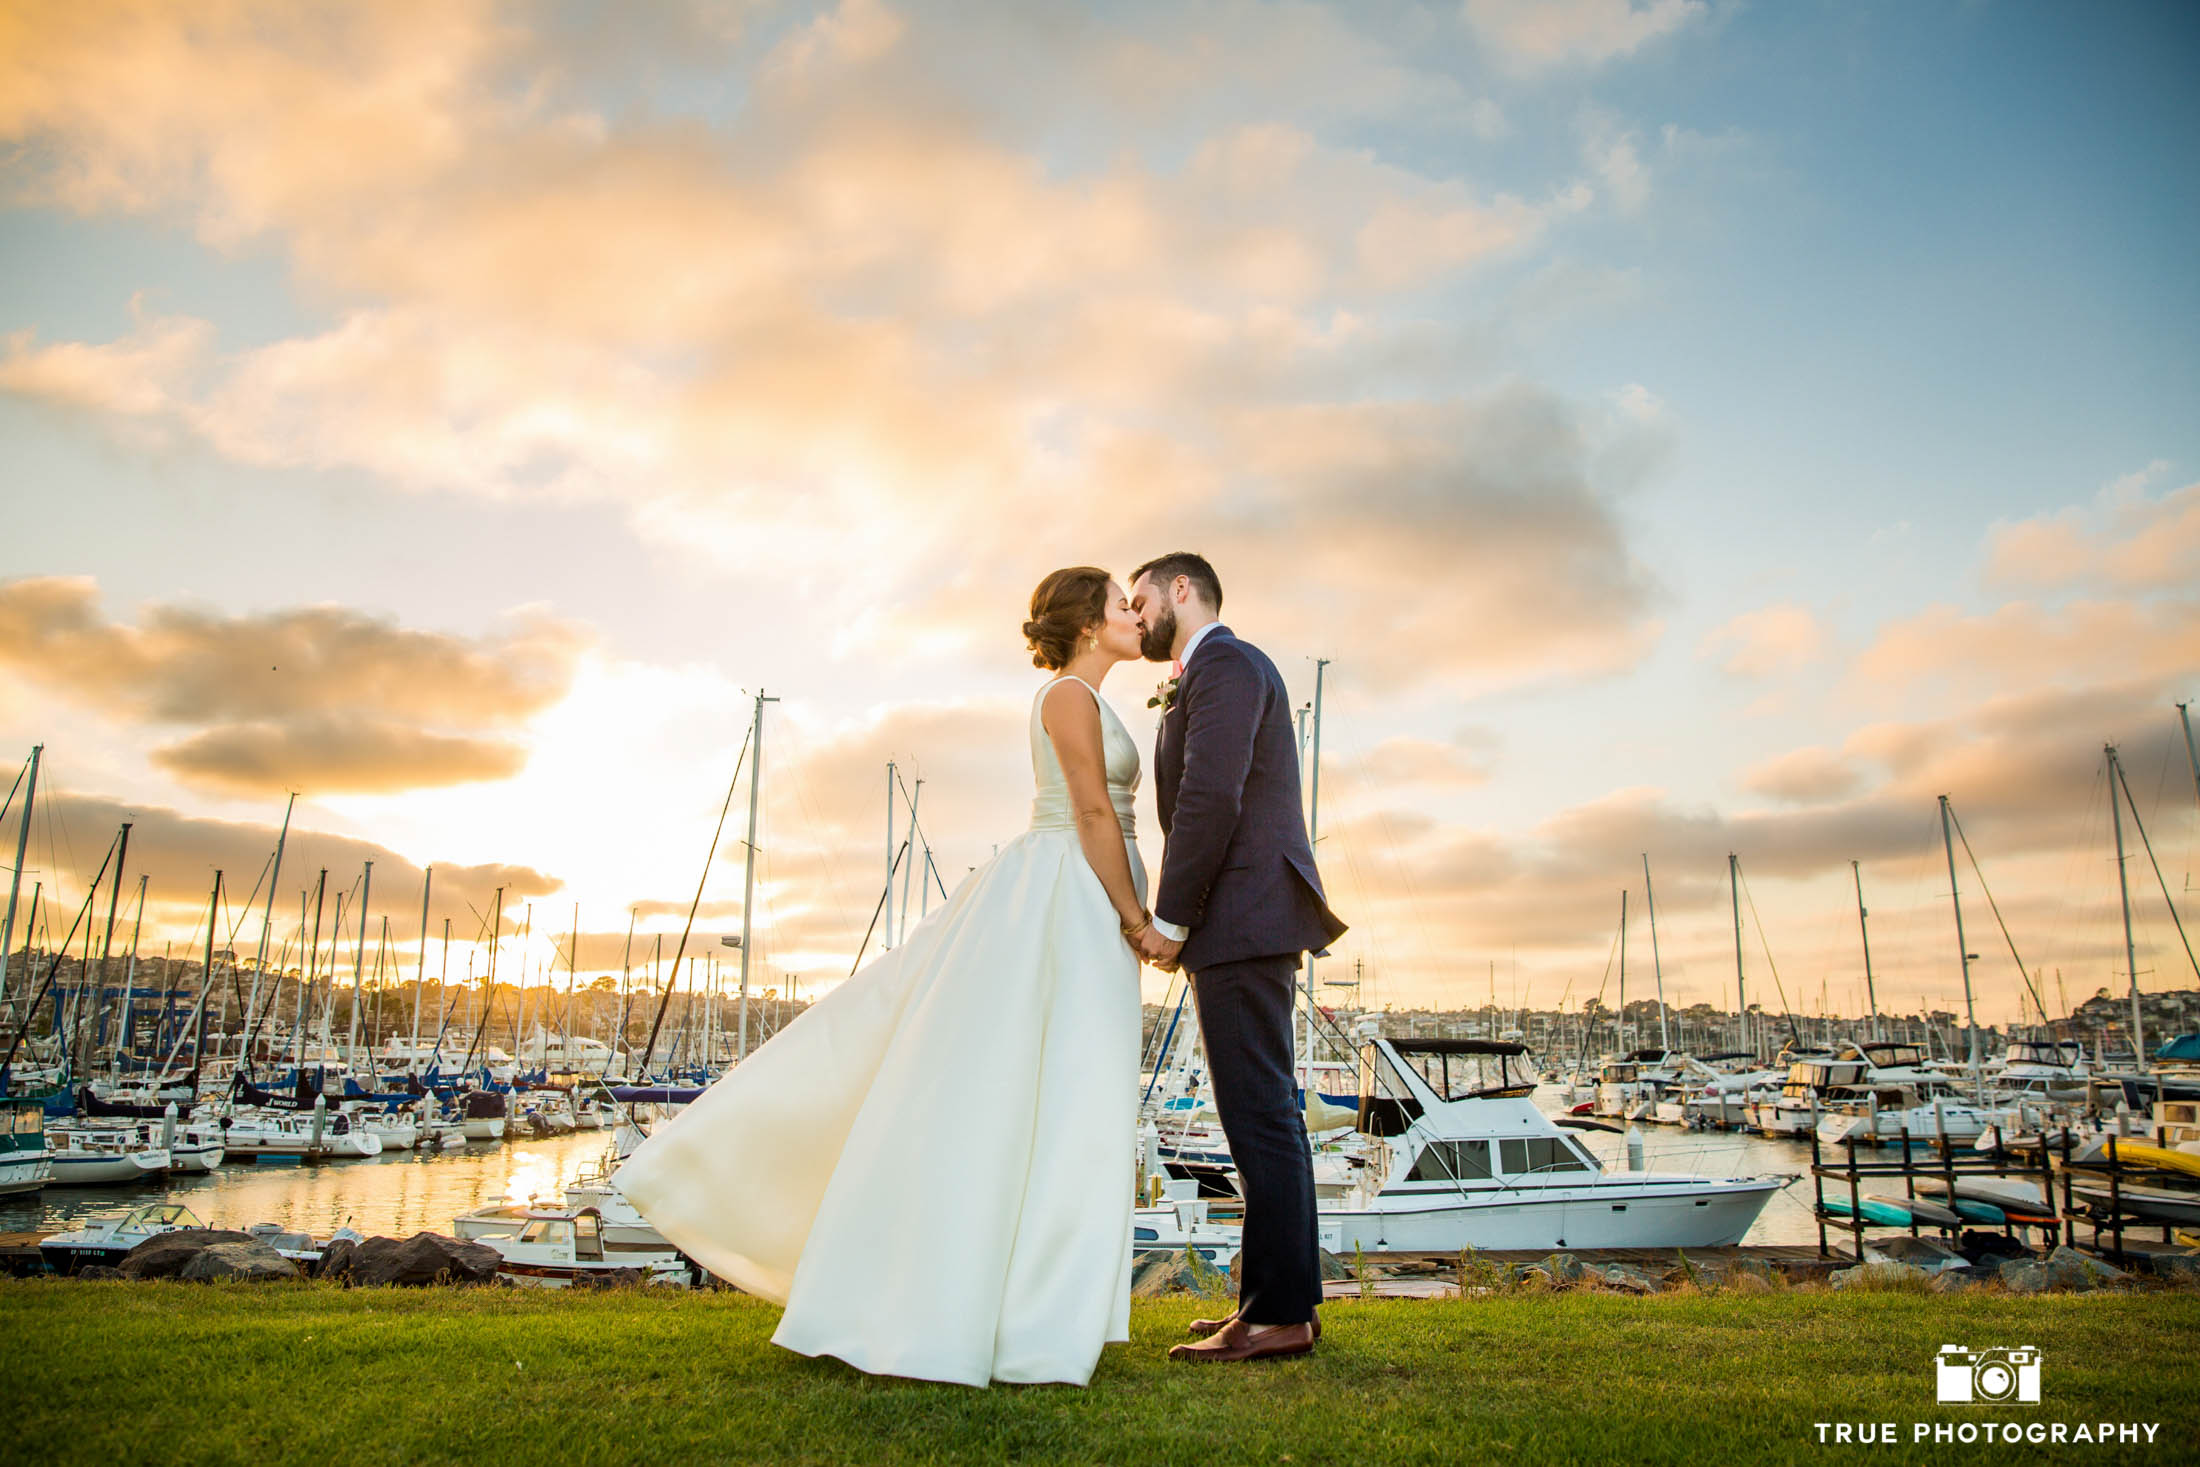 Lovely wedding photo at San Diego Harbor